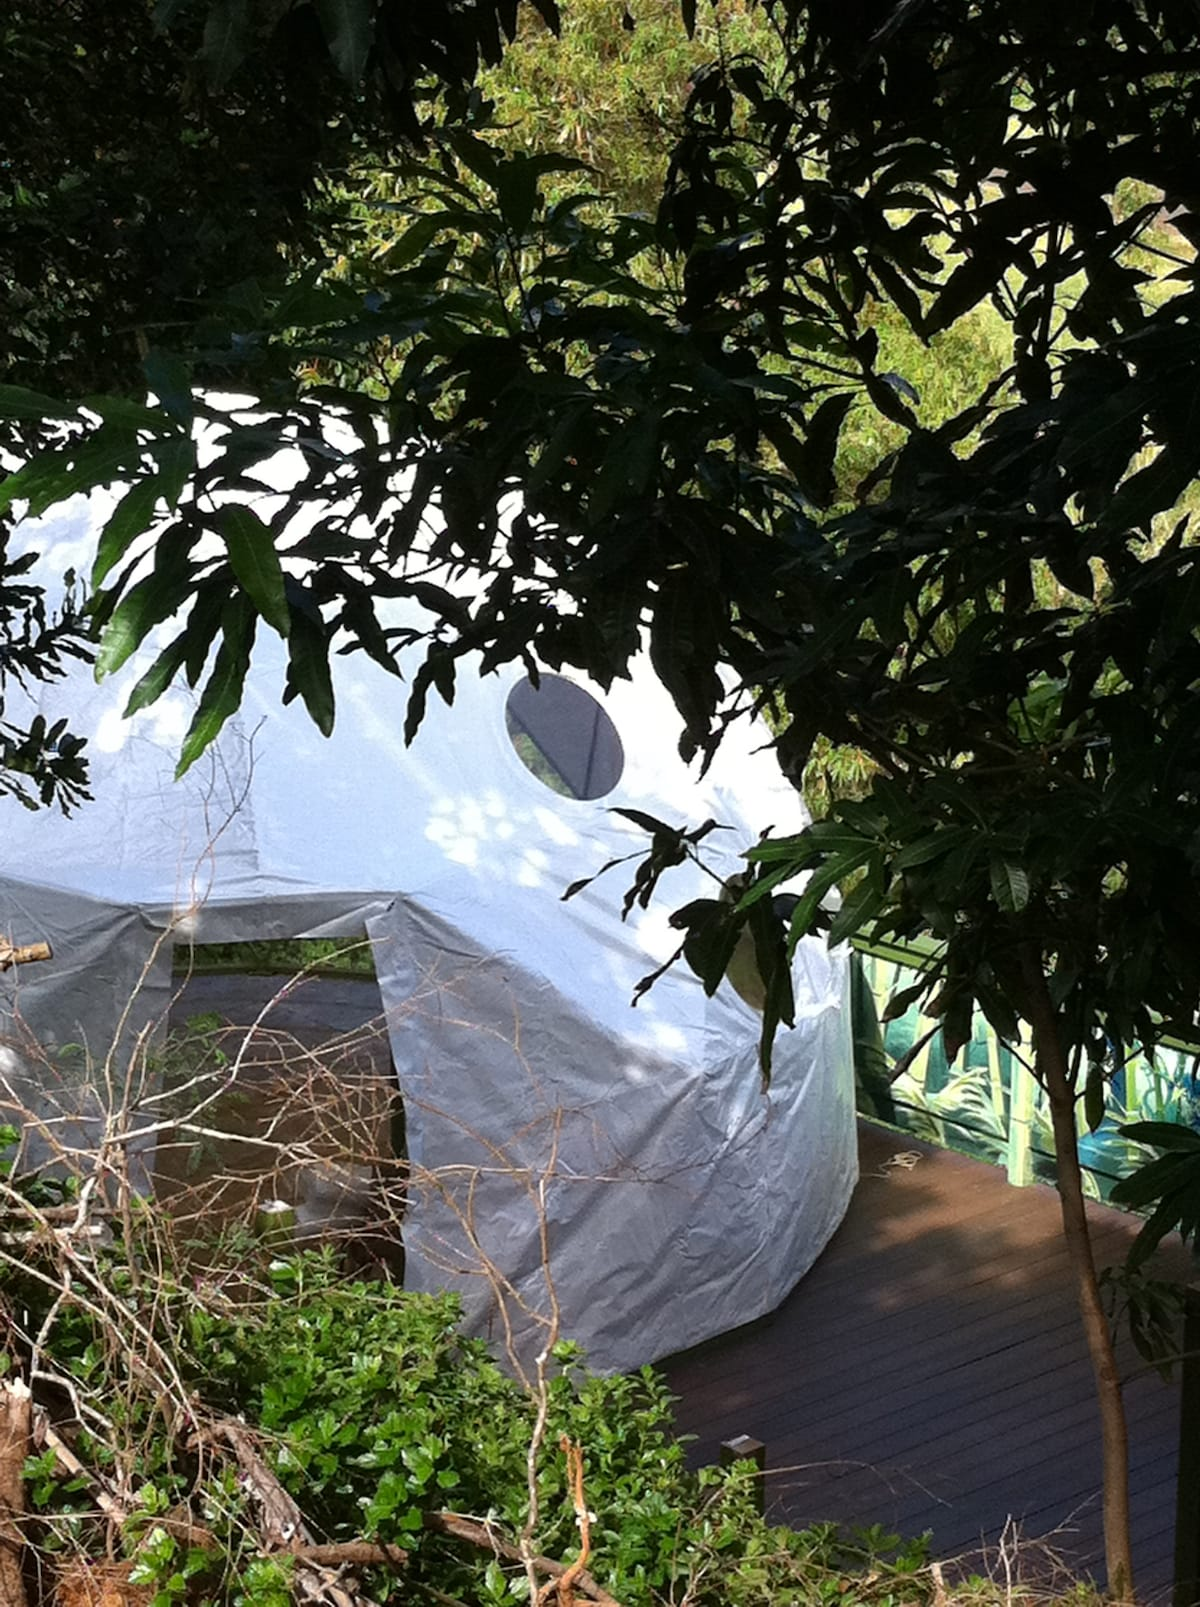 Walk down the stairs to find the Dome Hiding under a Mango Tree.